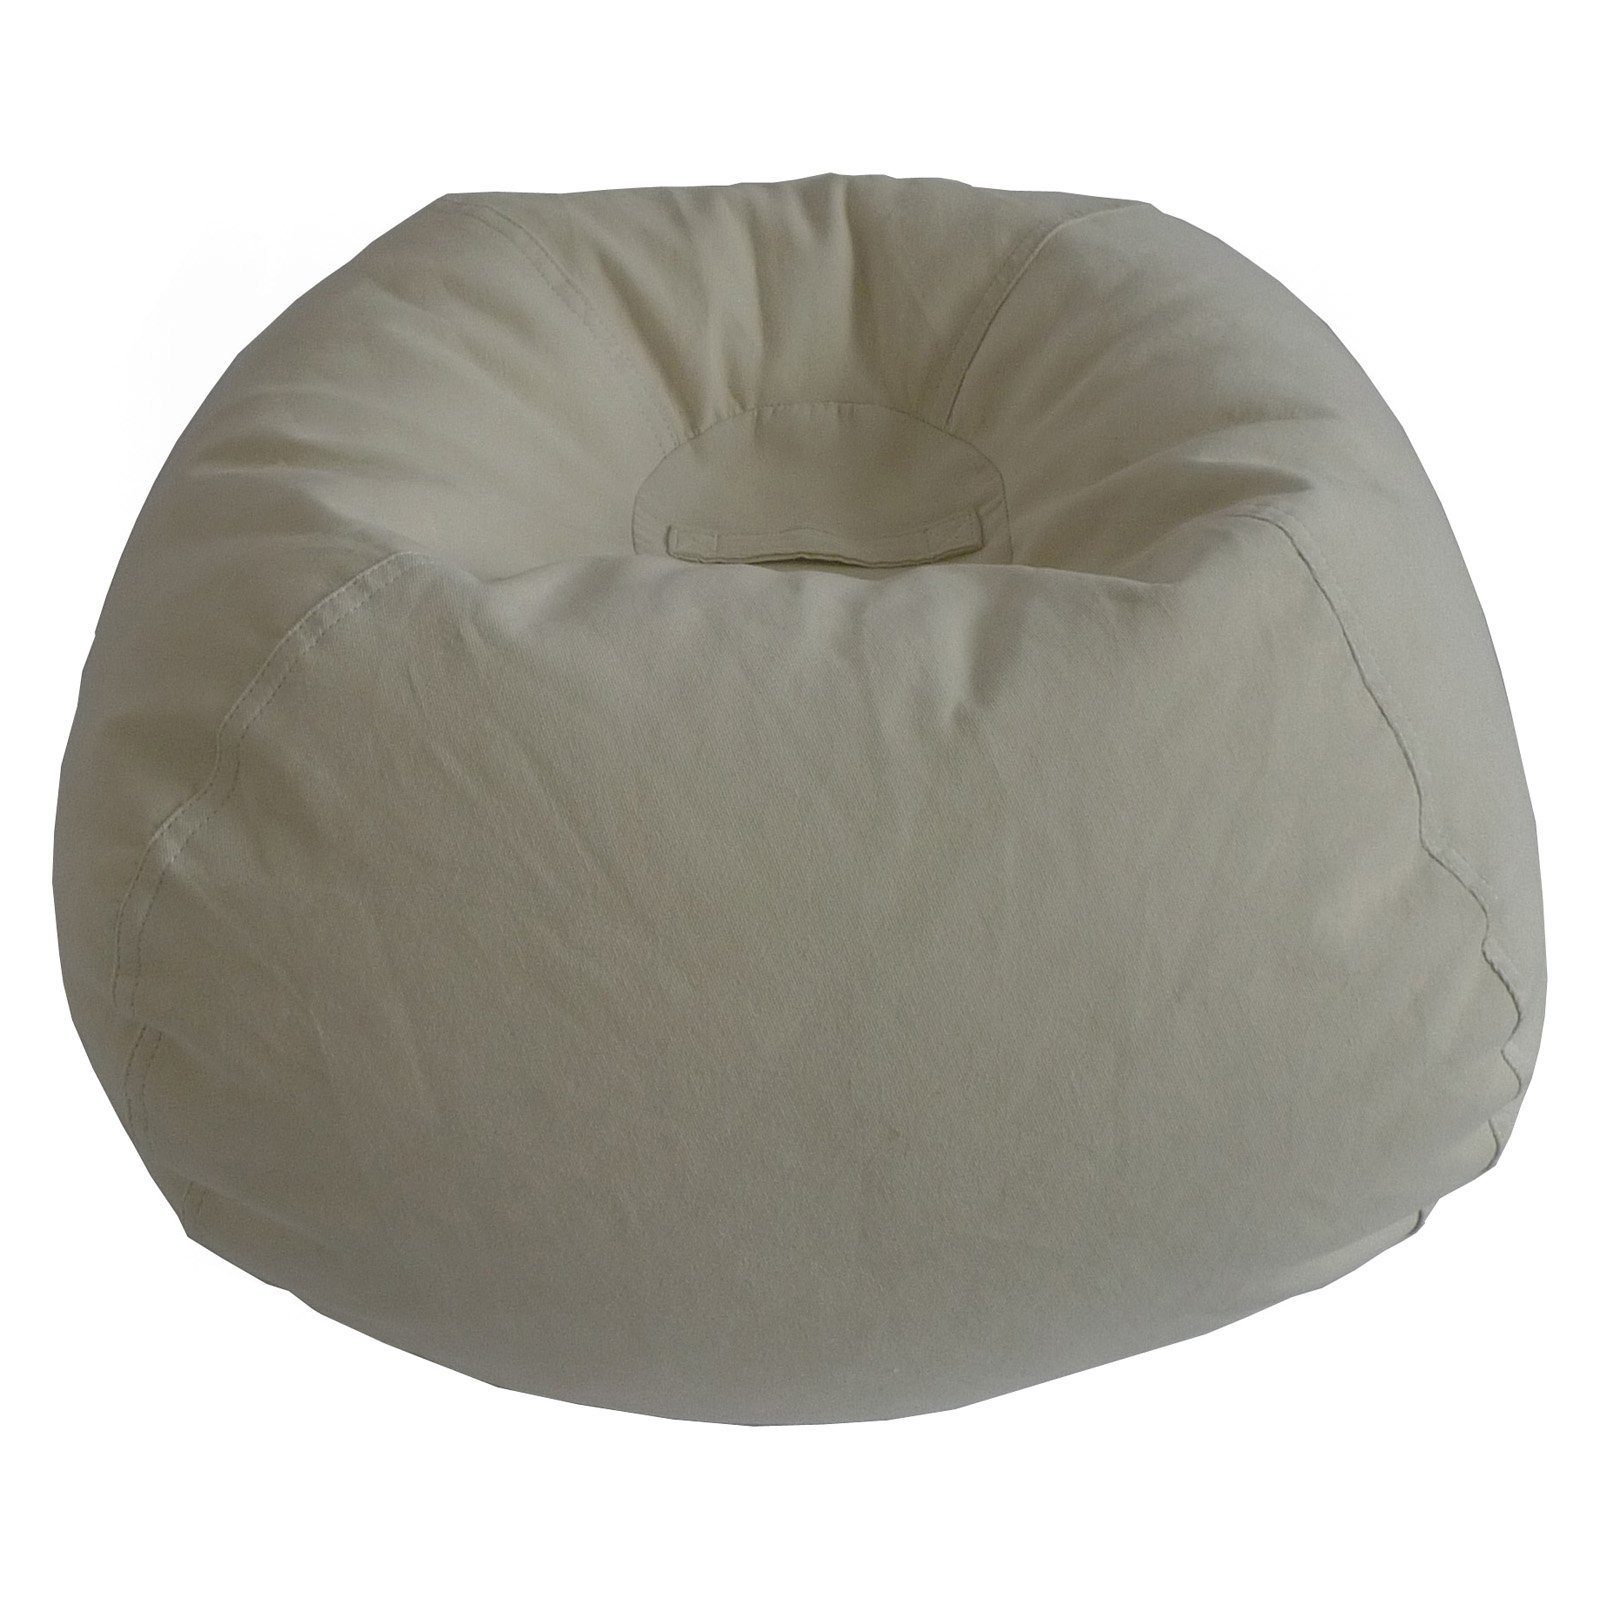 Ordinaire Ace Casual Furniture Medium Solid Corduroy Bean Bag Chair, Multiple Colors    Walmart.com